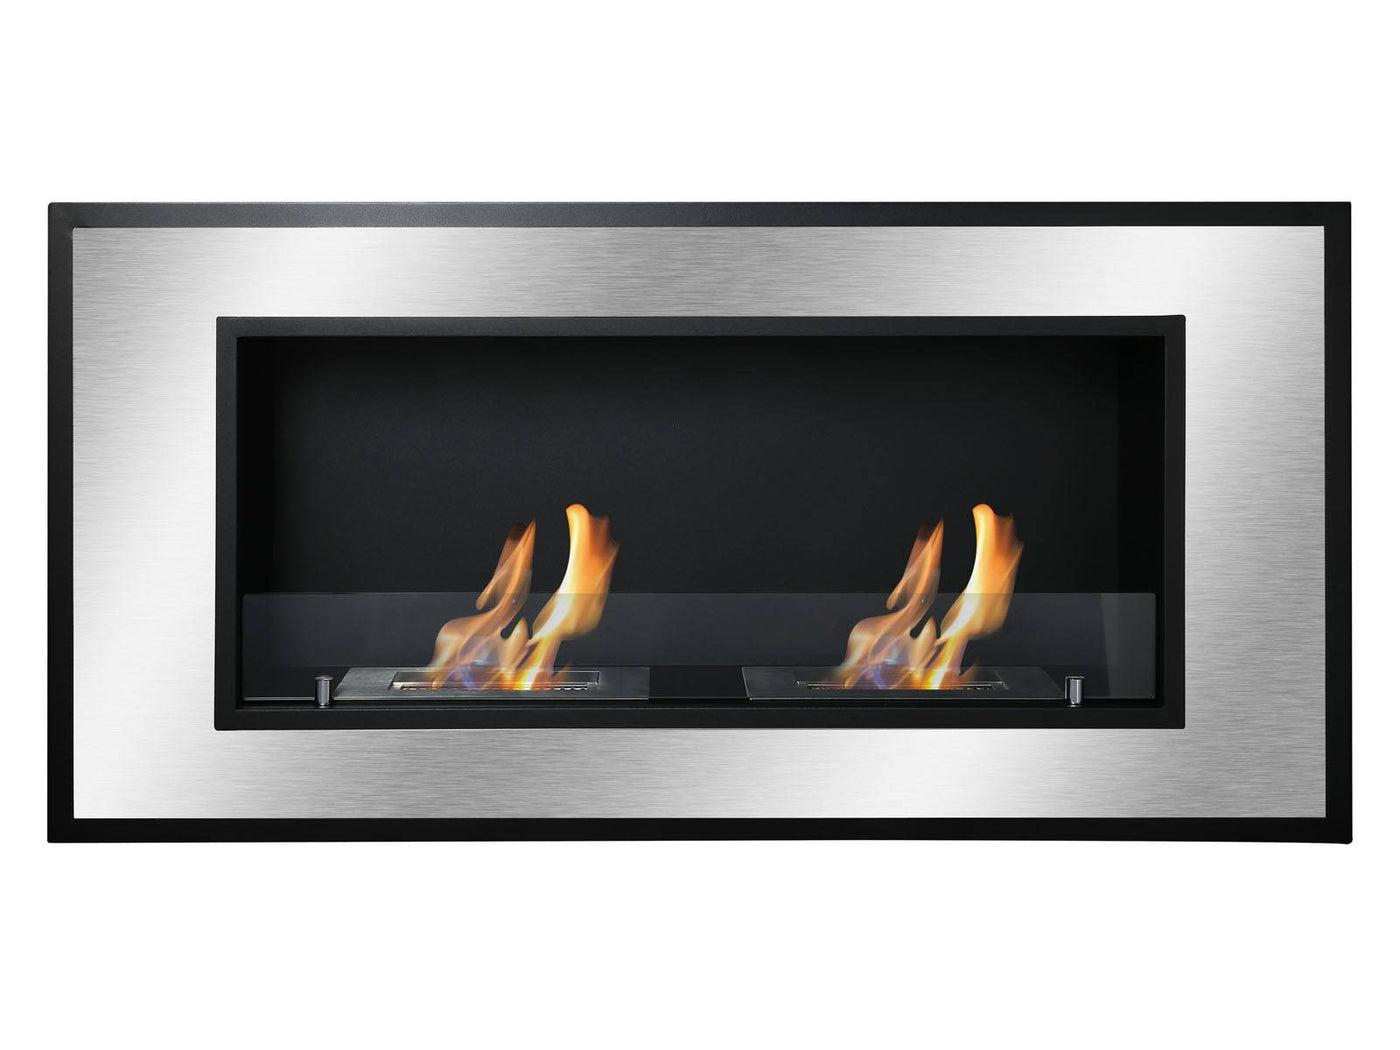 ignis bellezza wall mounted recessed ventless ethanol fireplace